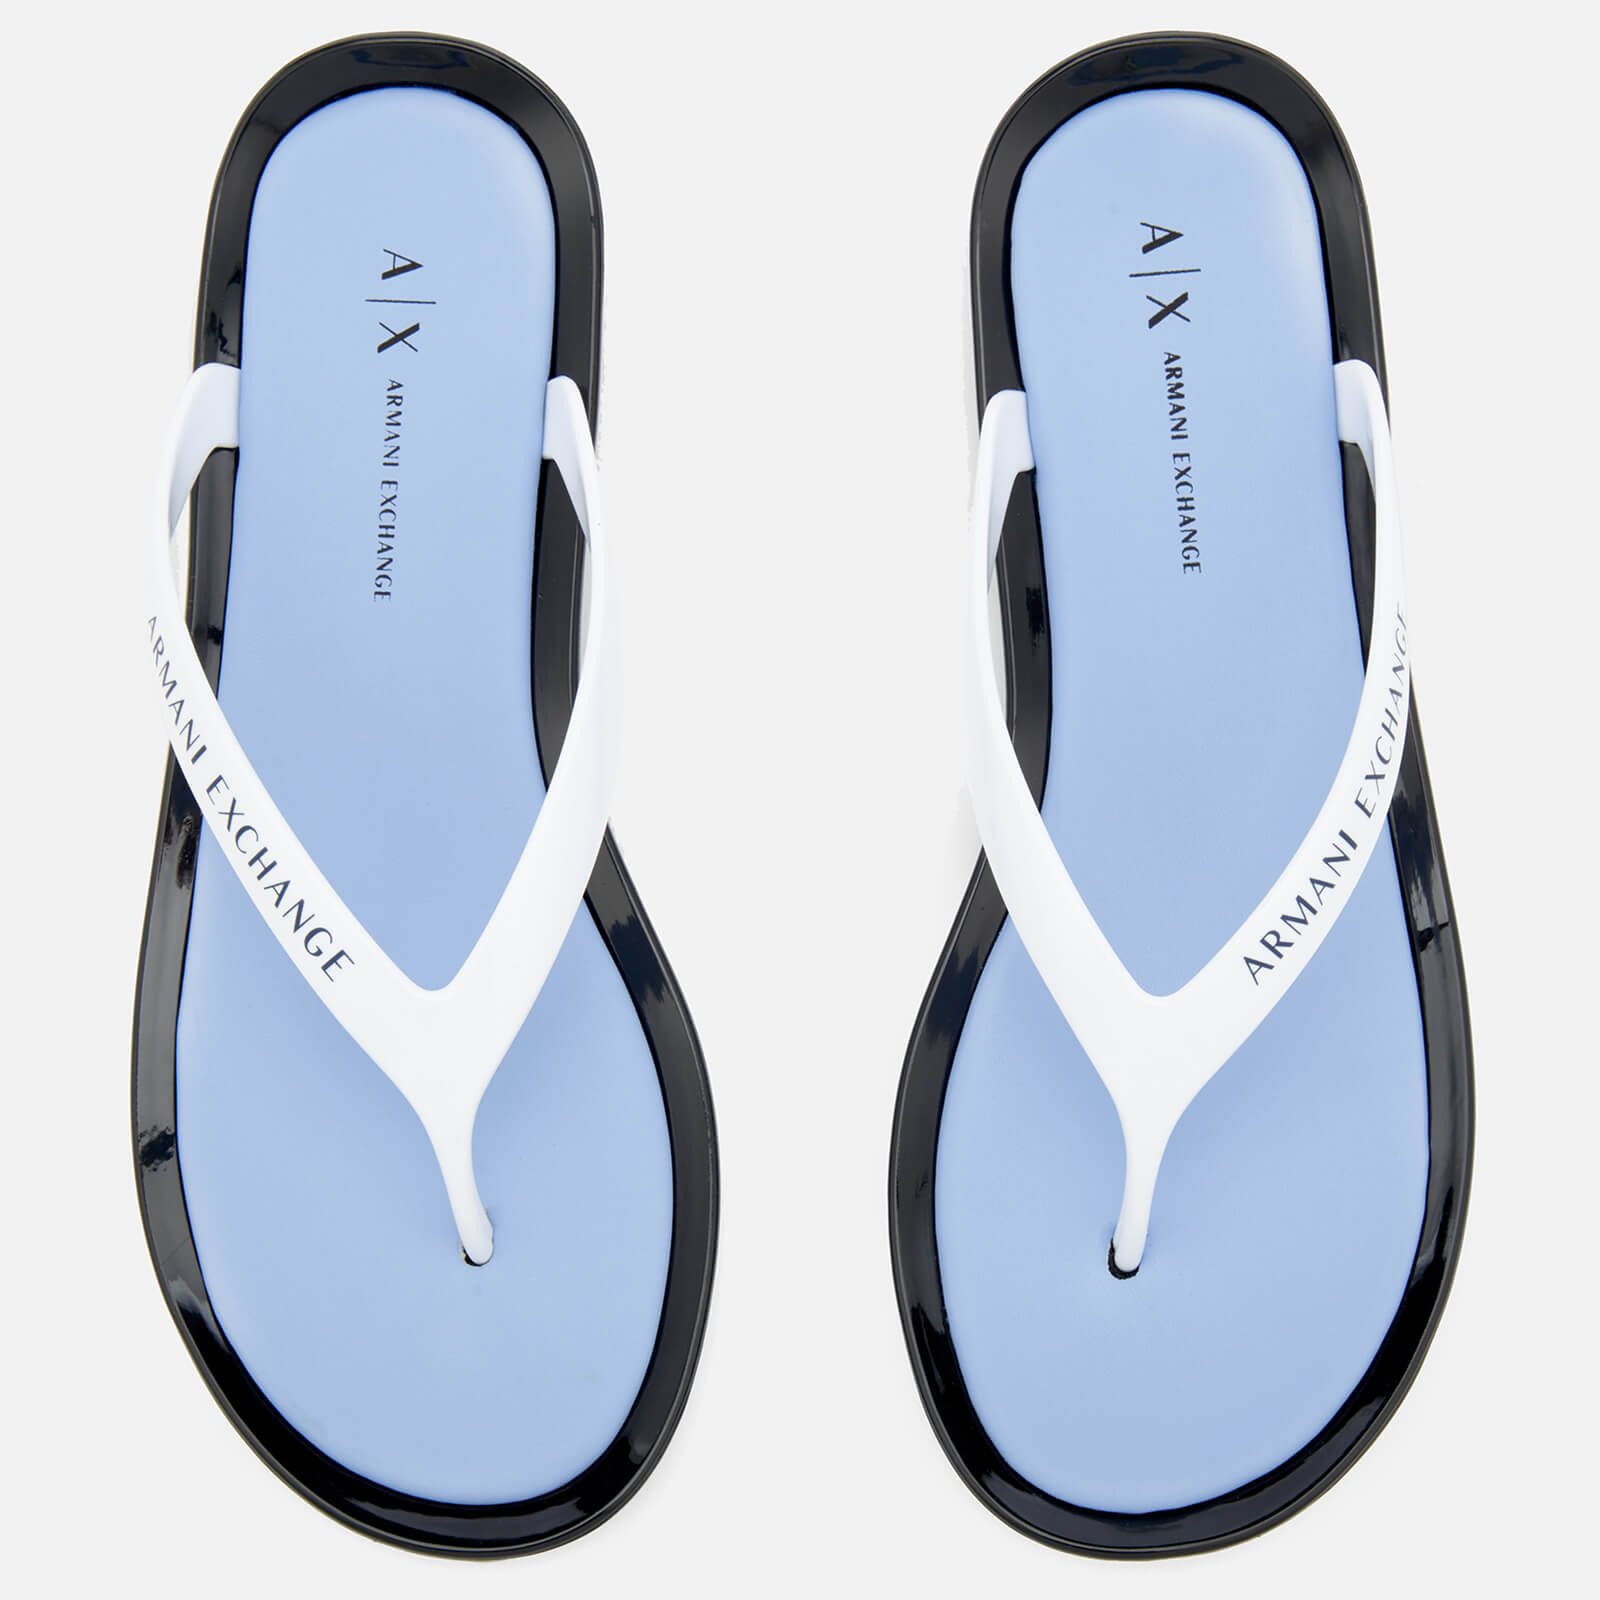 447140c98 Armani Exchange Women s PVC Flip Flops - Obsidian Serenity White Womens  Accessories